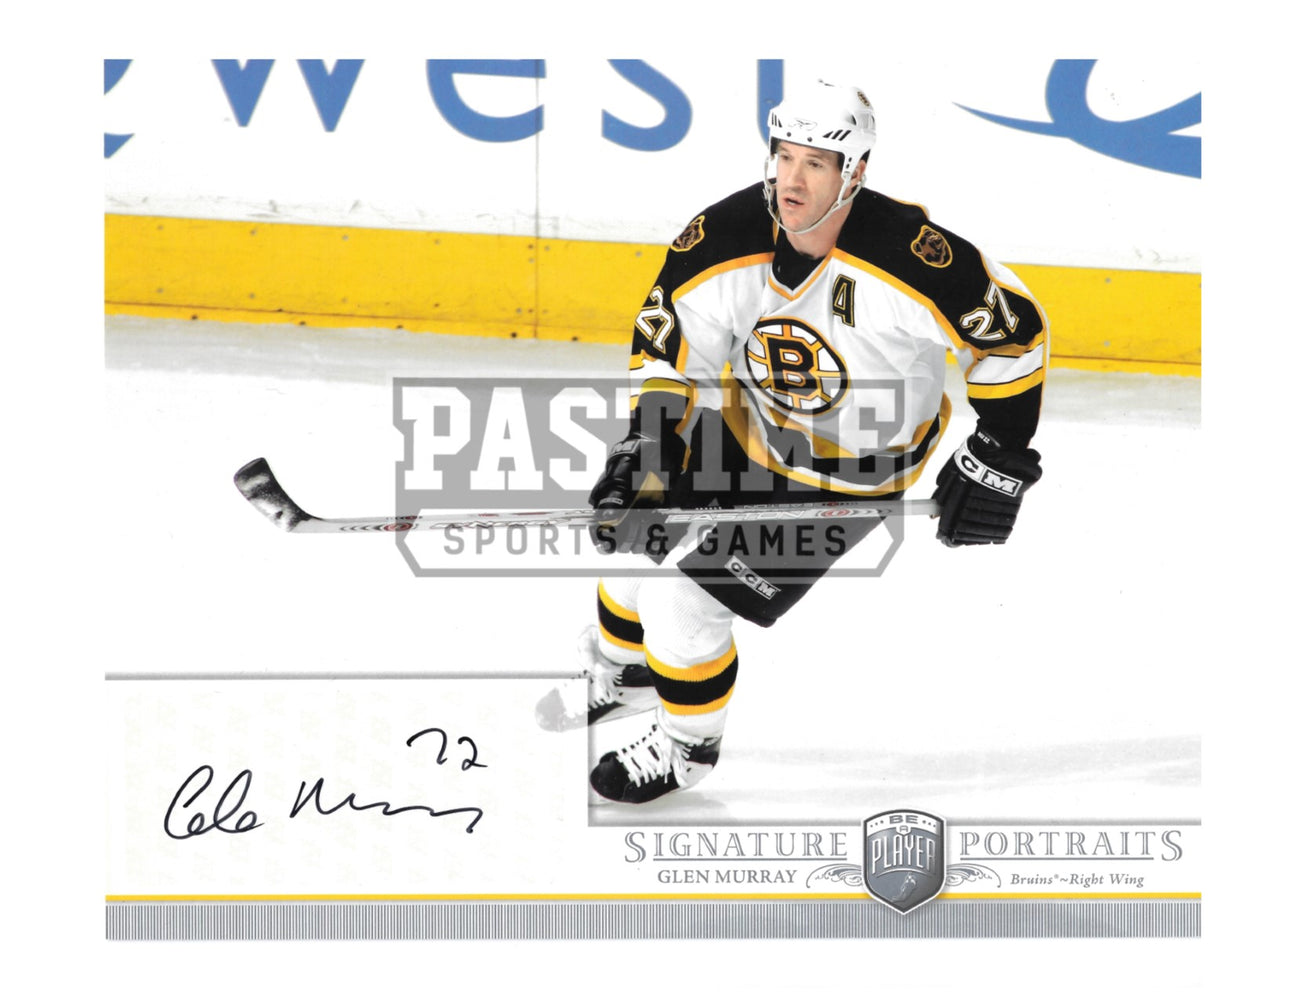 Glen Murray Autographed 8X10 Boston Bruins Away Jersey (Signature Portraits) - Pastime Sports & Games